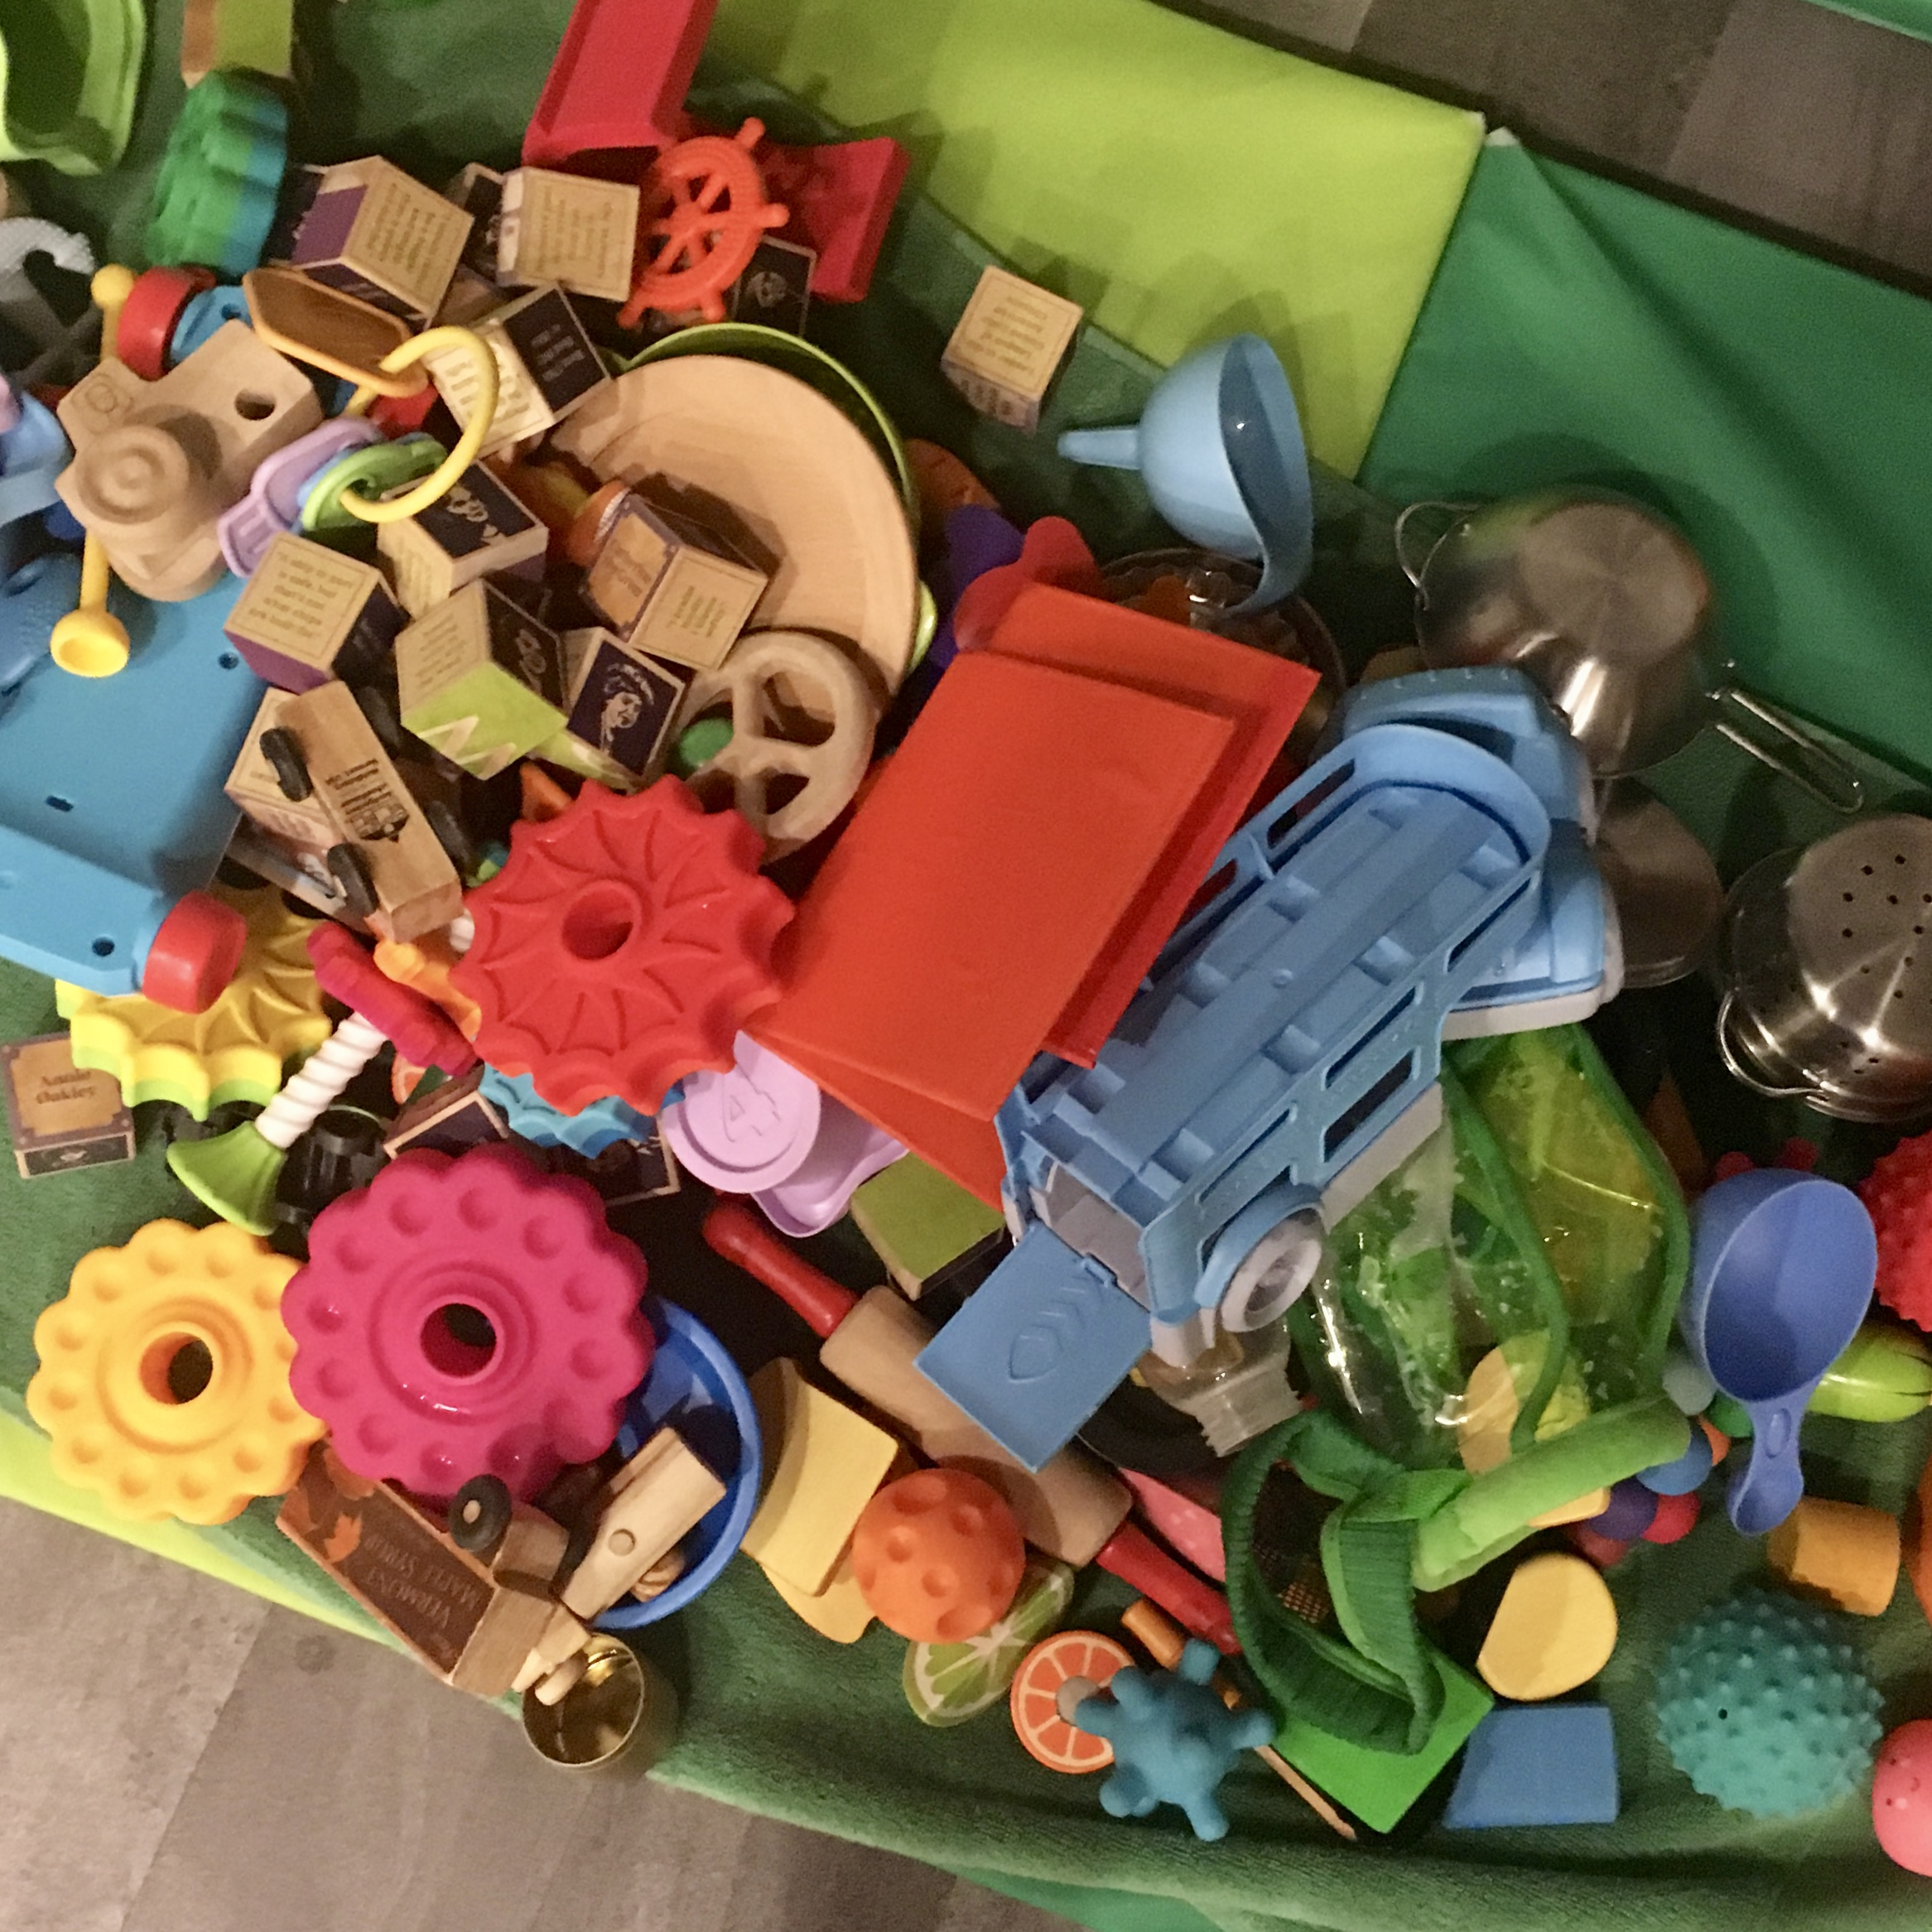 Image: A large pile of toddler toys